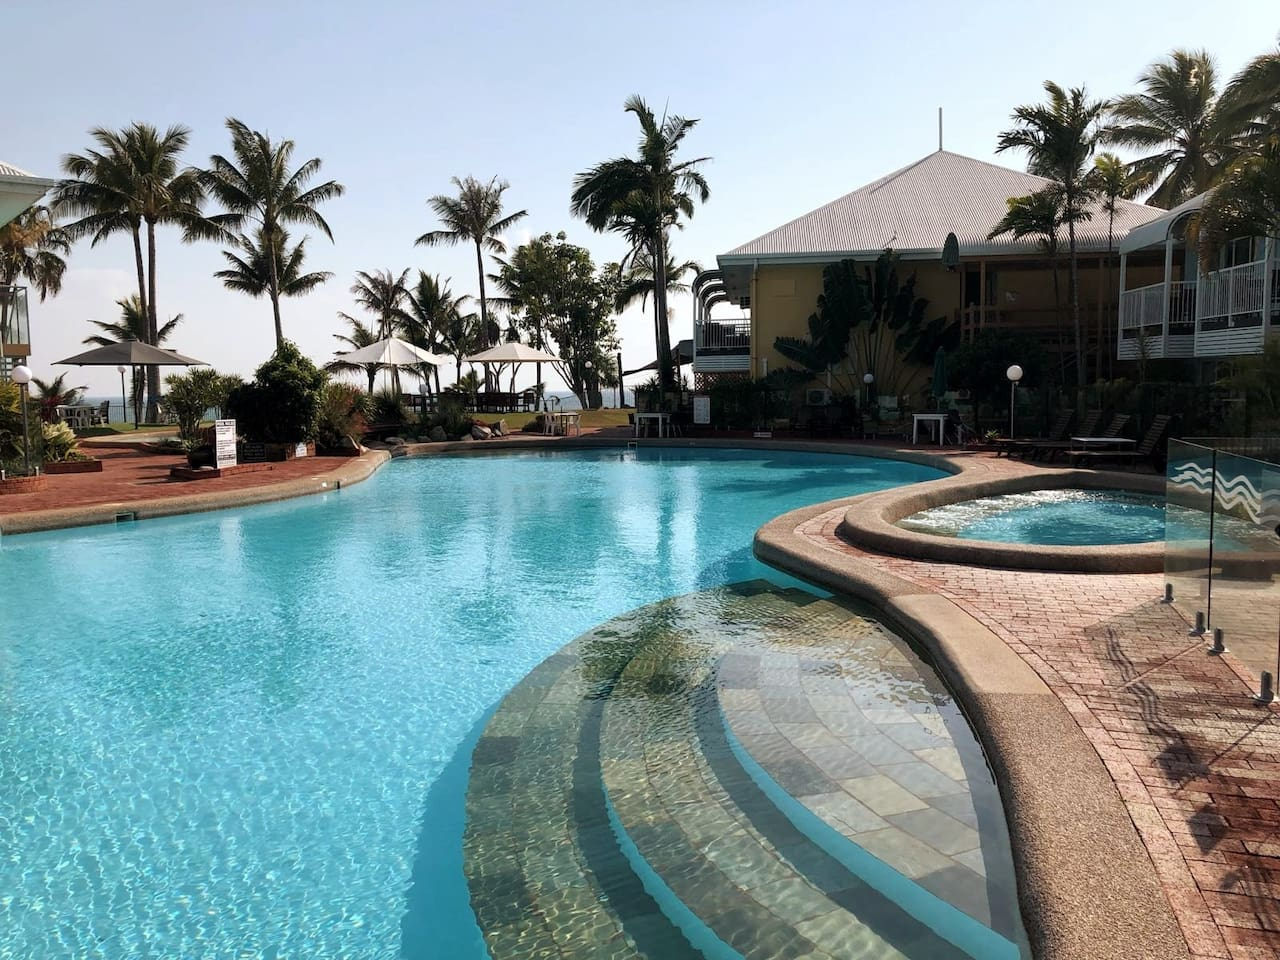 Your unit overlooks the pool and Pacific Ocean